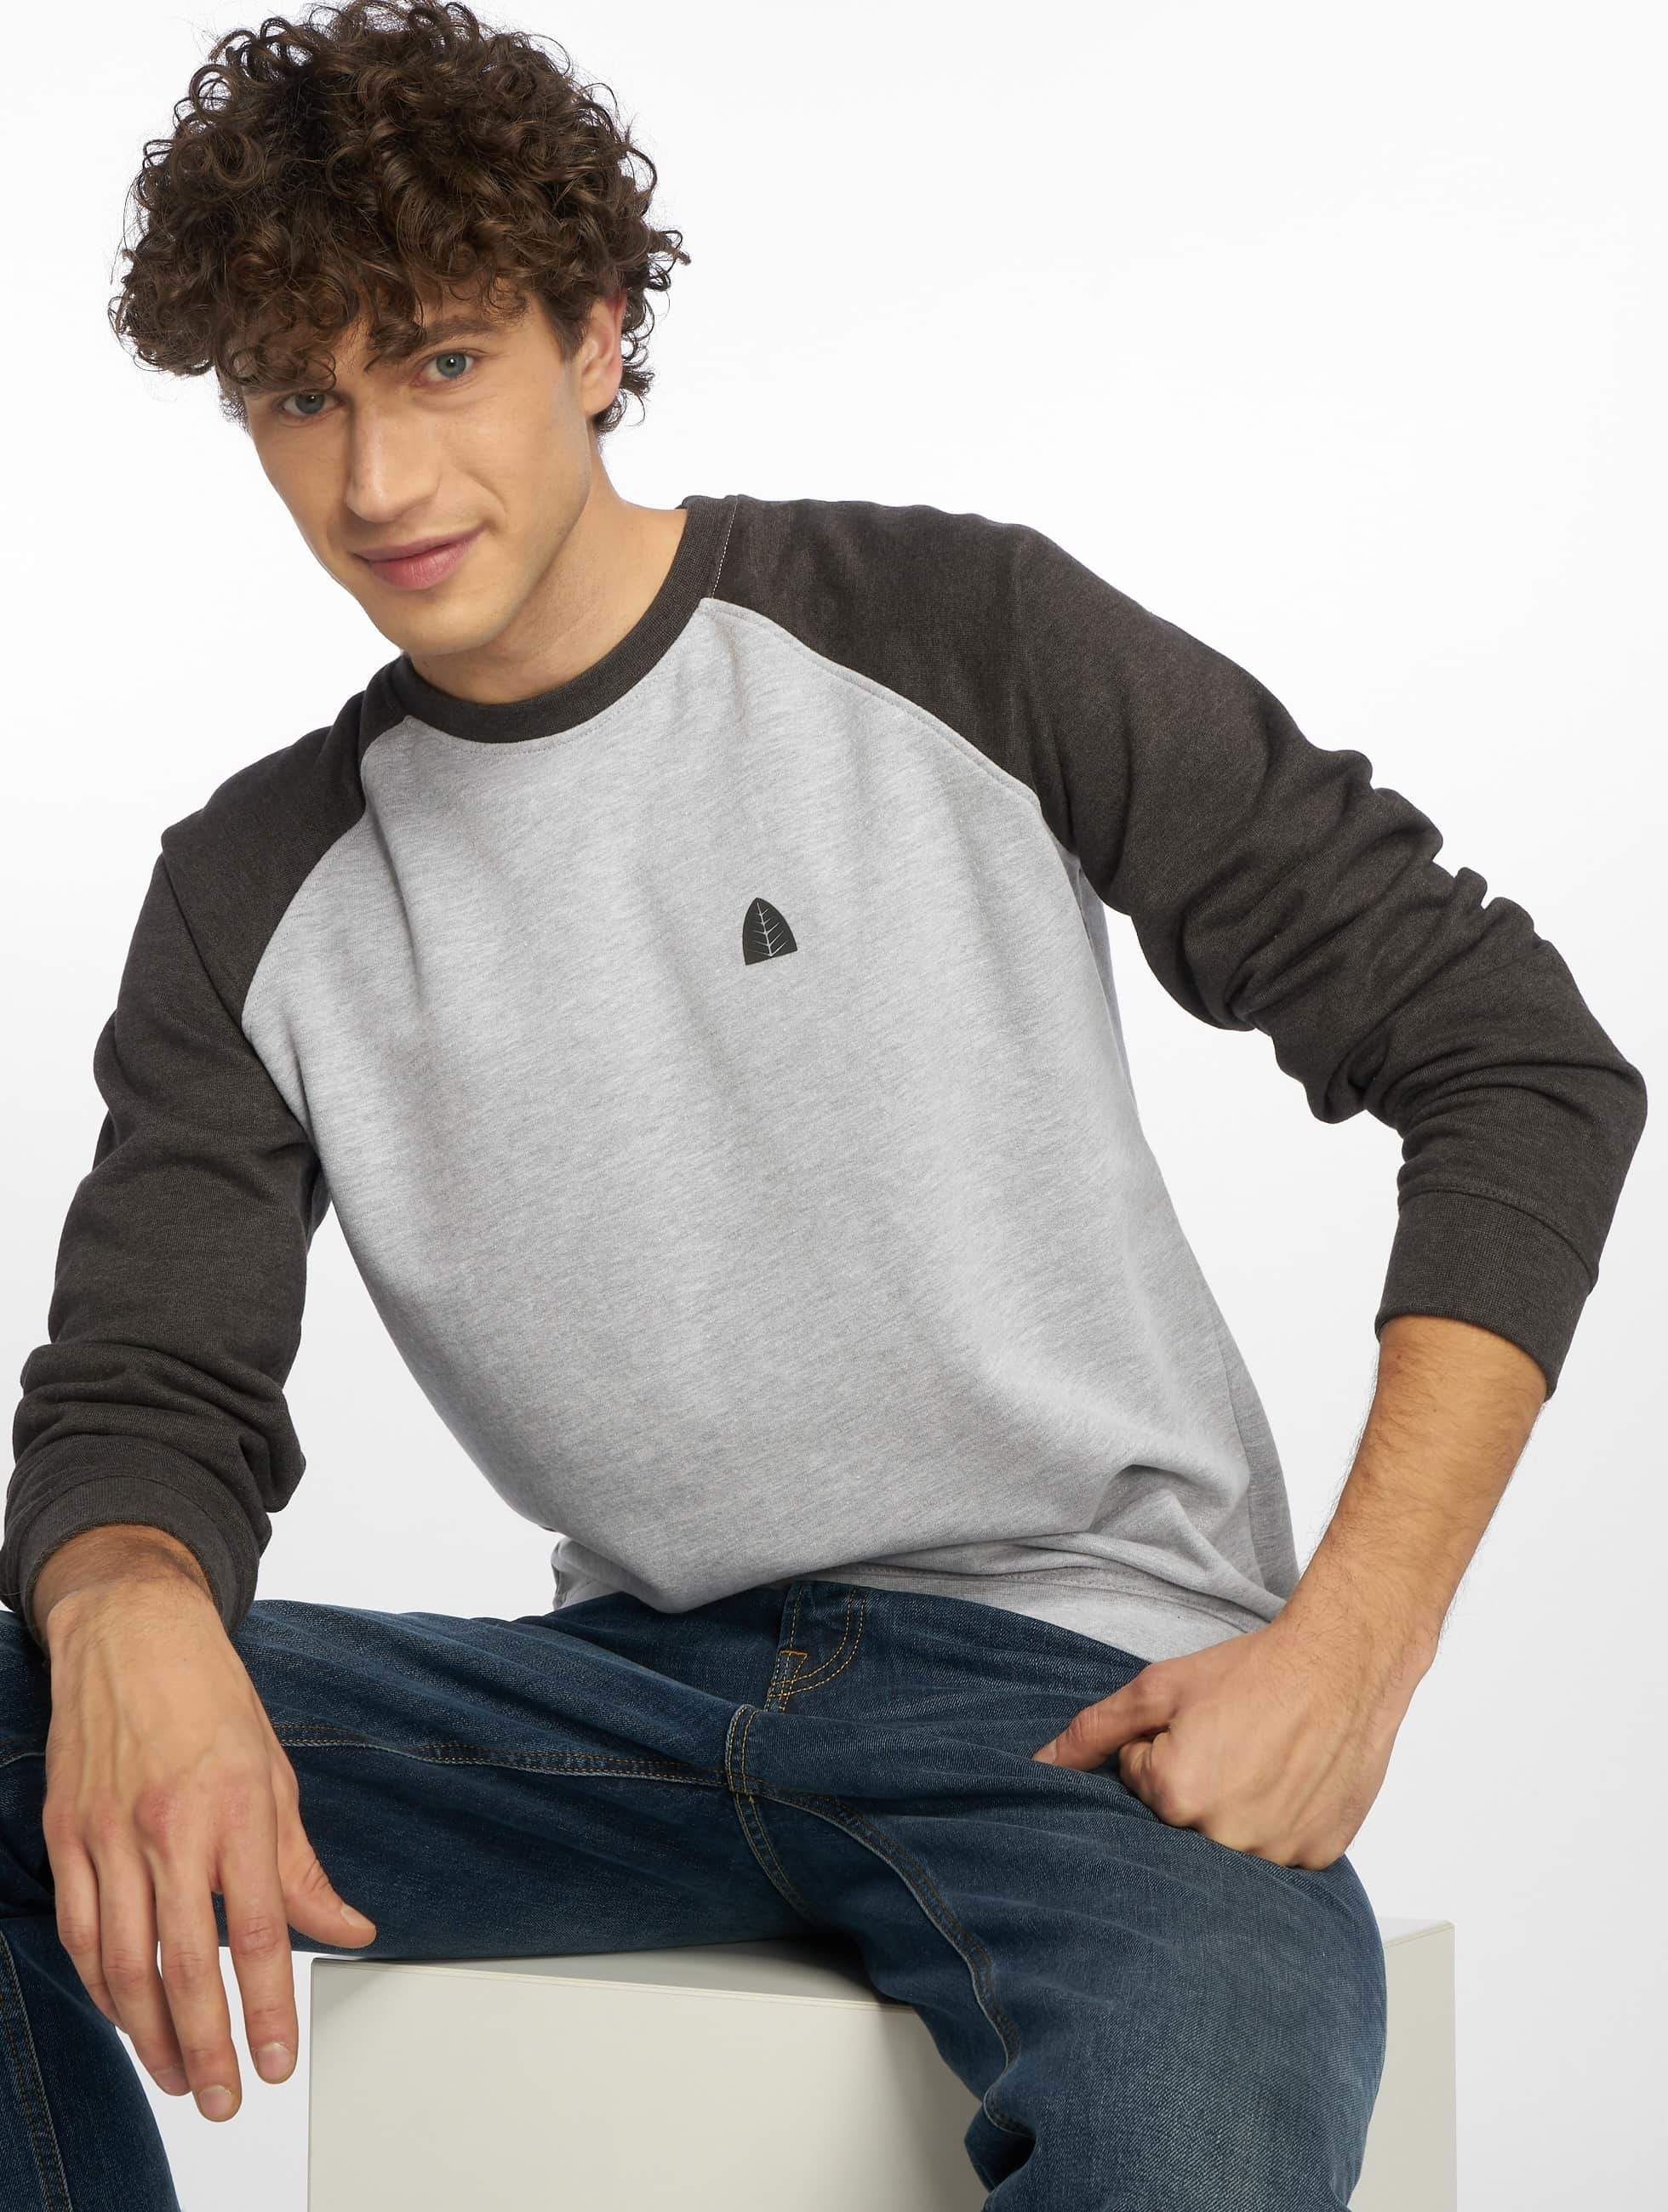 Just Rhyse / Jumper Raglan II in grey 2XL